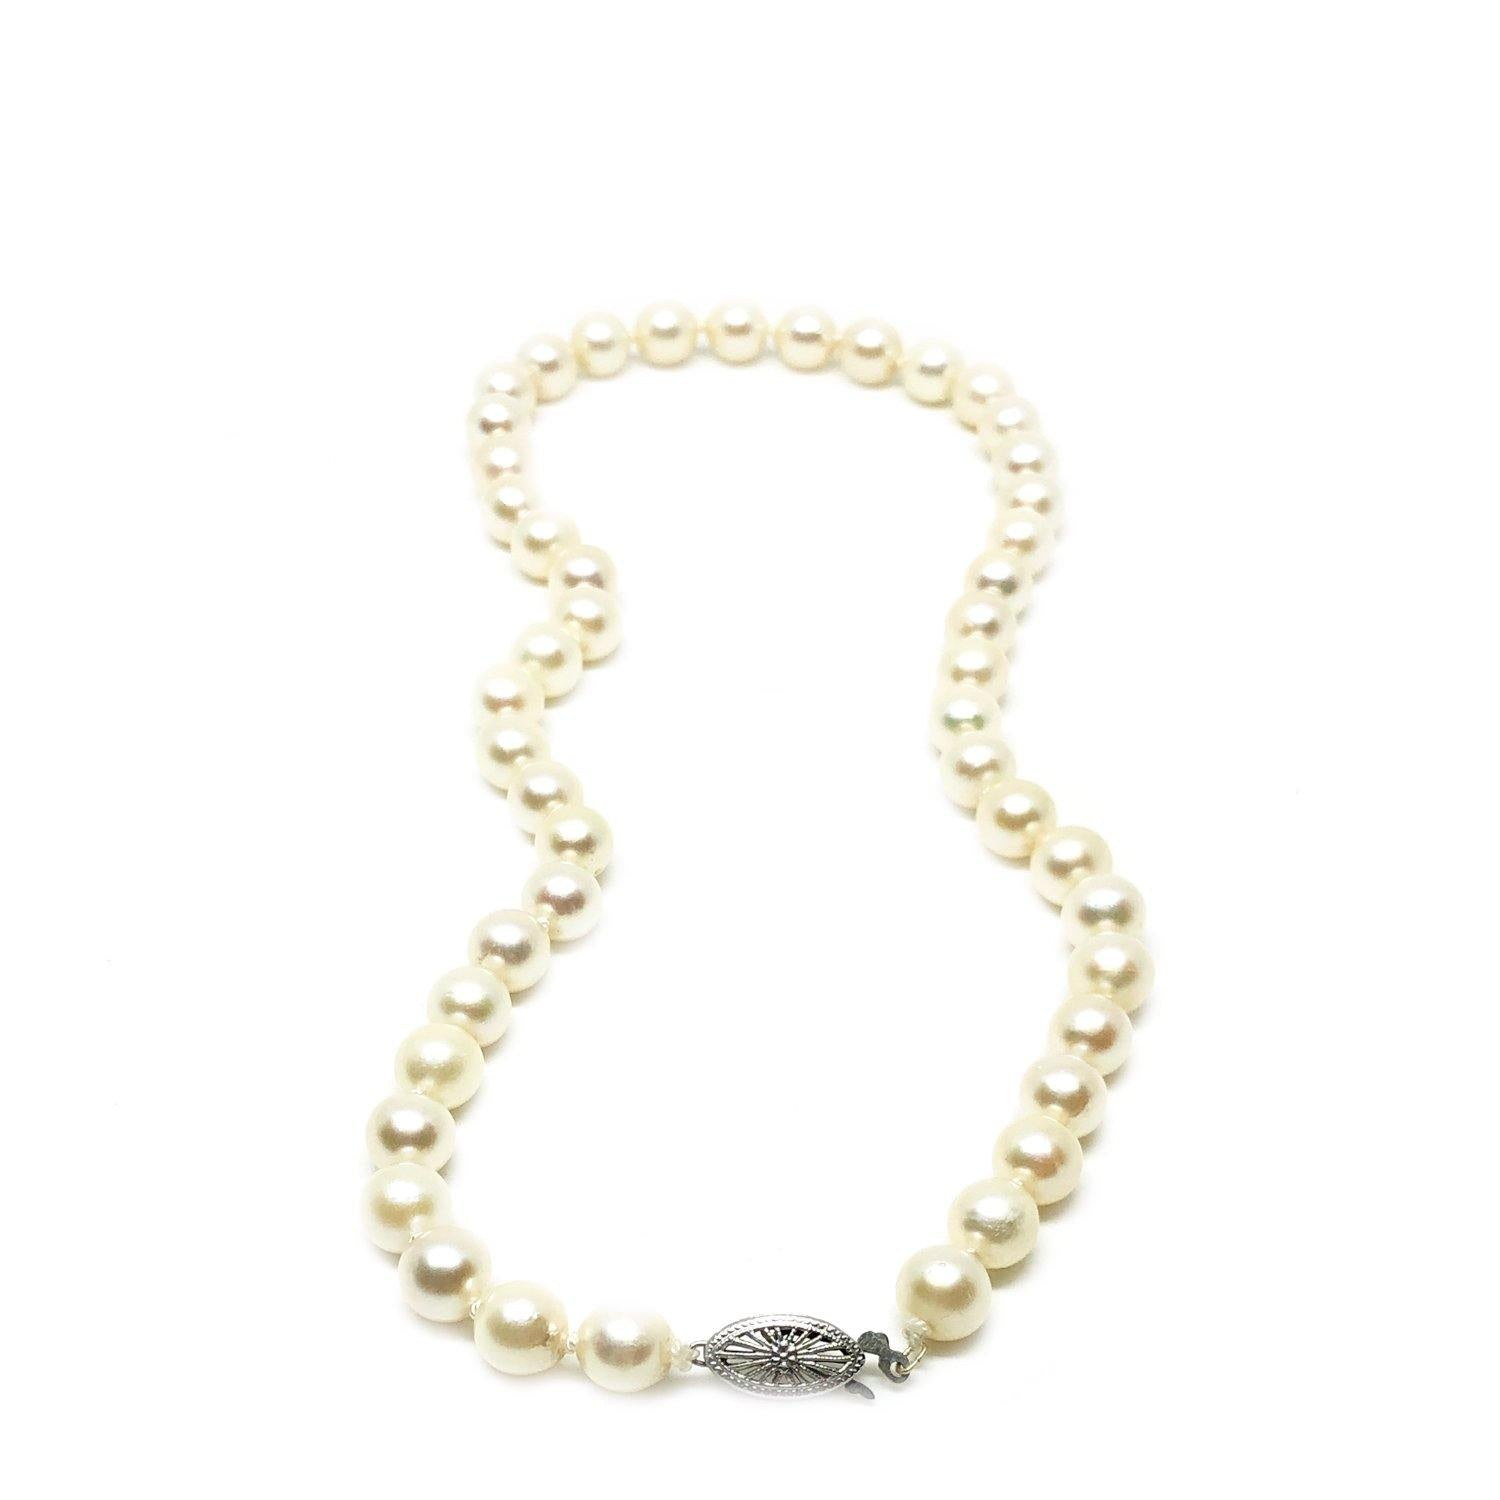 Filigree White Japanese Saltwater Cultured Akoya Pearl Necklace - 14K White Gold 16 Inch